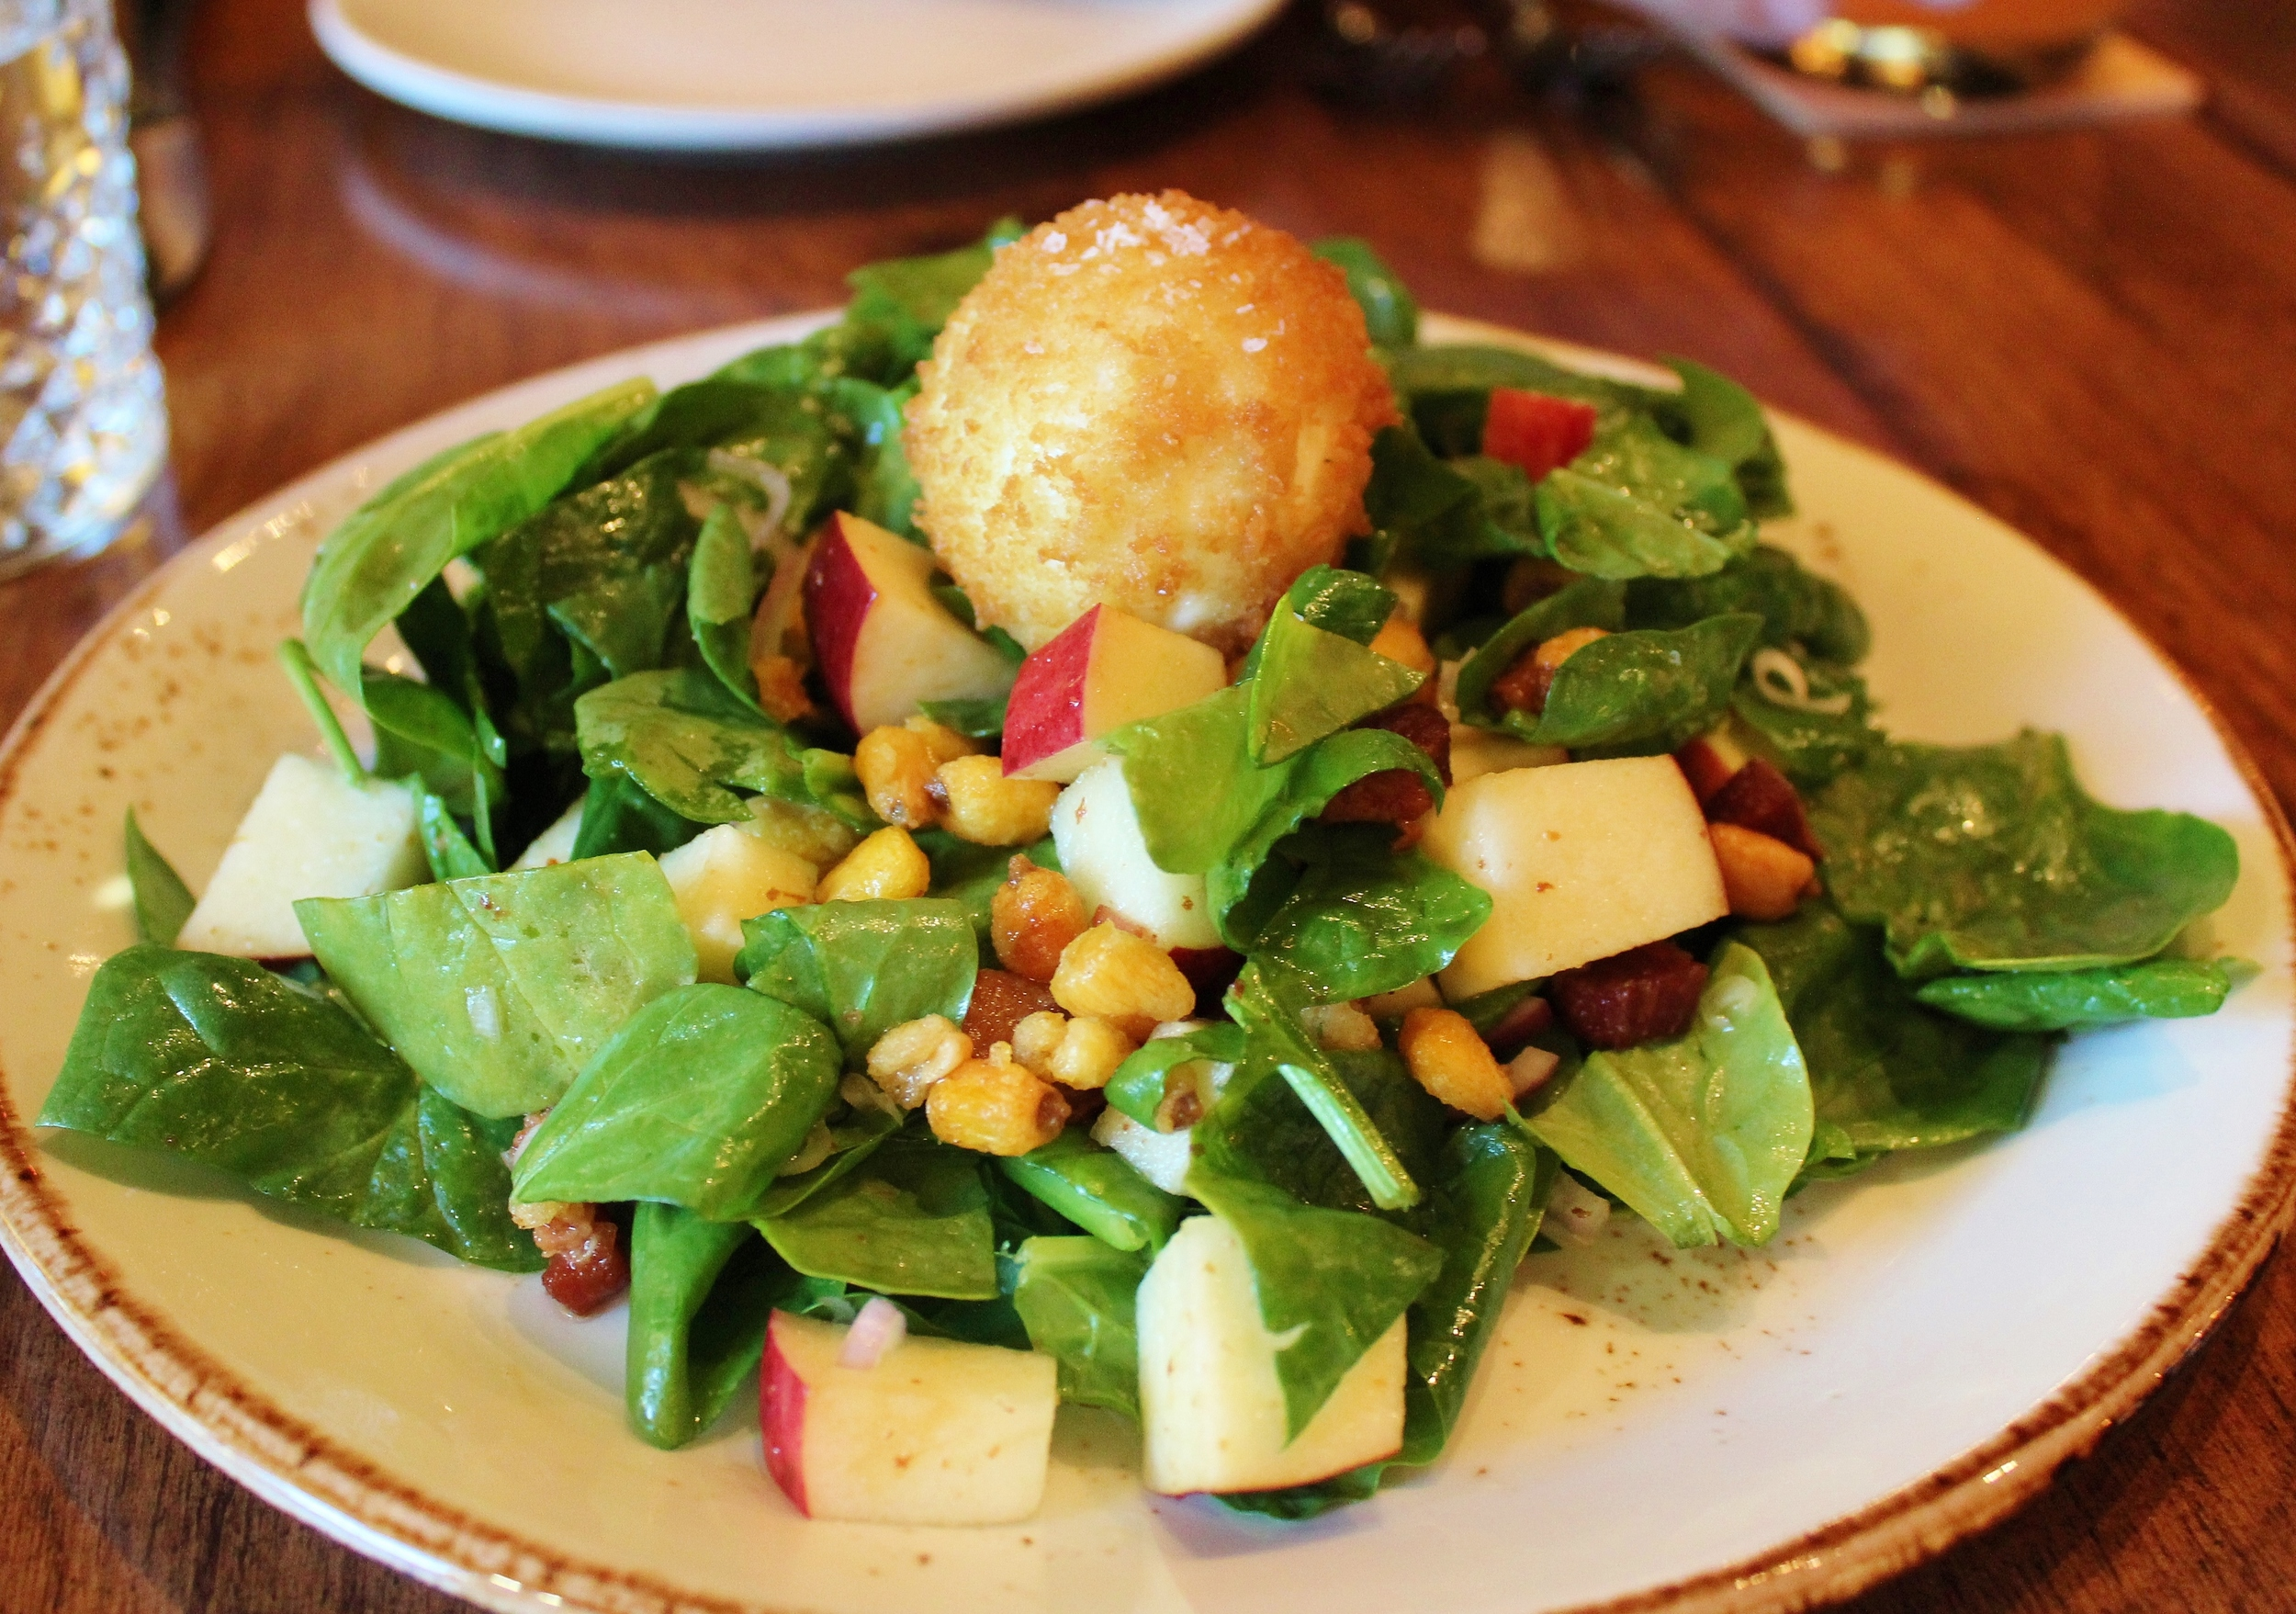 Spinach salad with crispy soft-boiled egg, apple, shallots, corn nuts, bacon vinaigrette